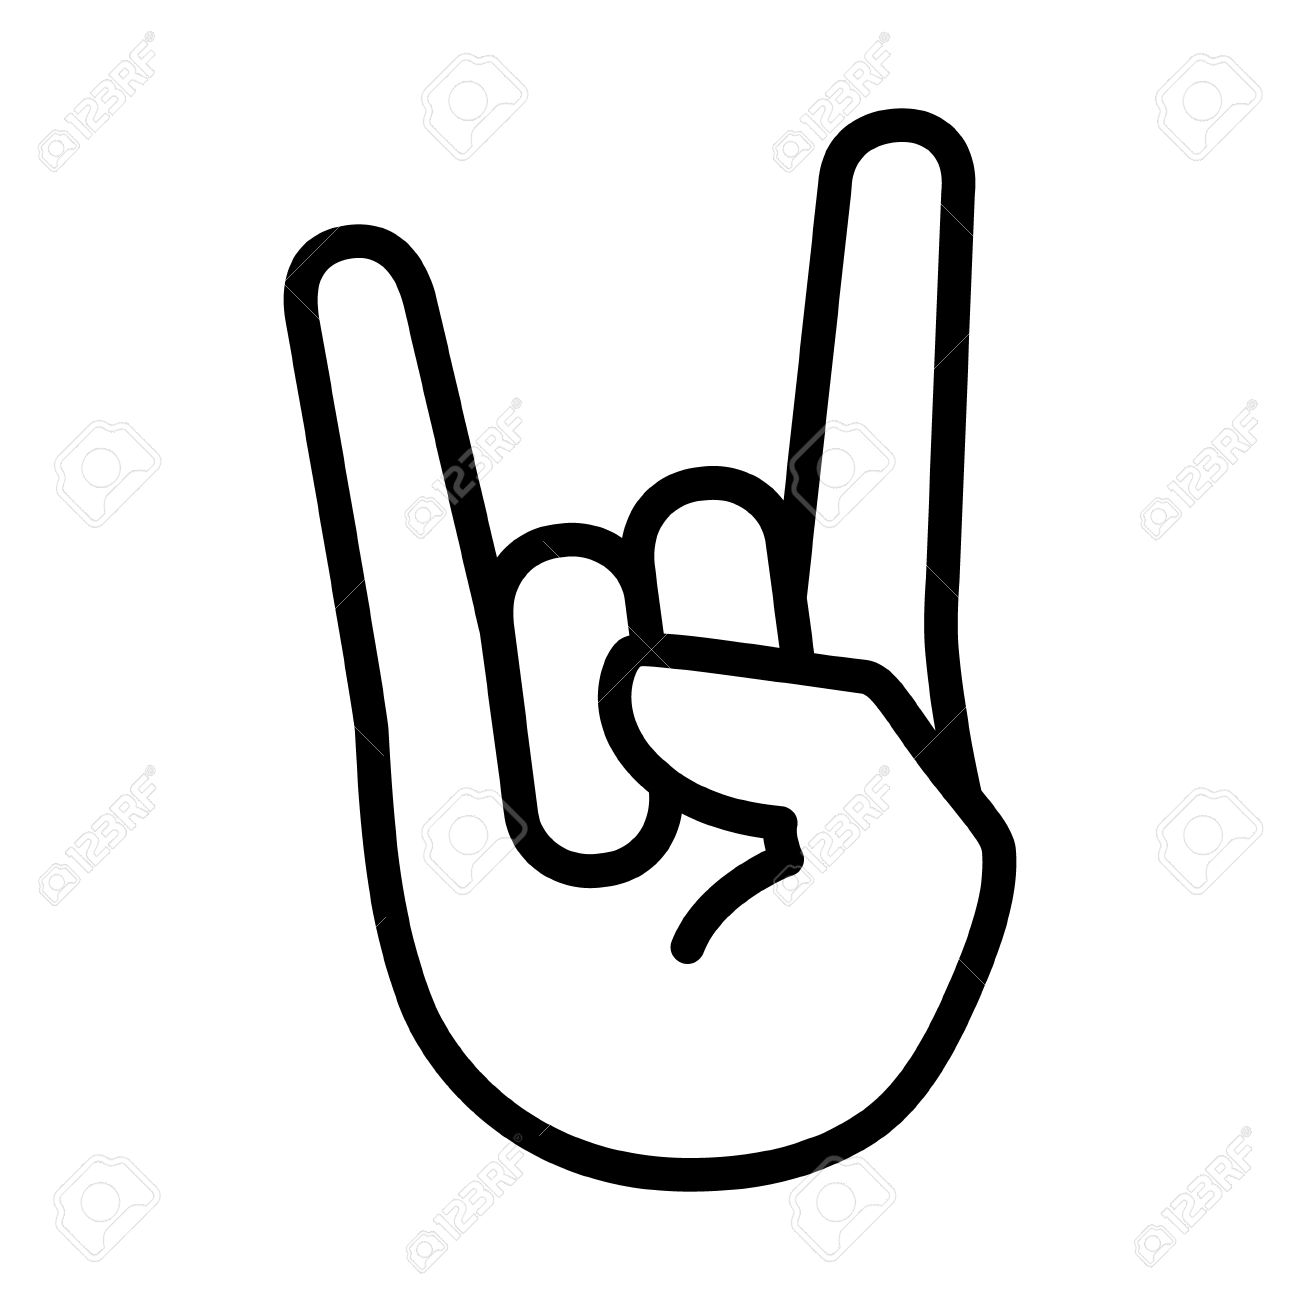 Rock & roll / heavy metal / sign of the horns line art icon for apps and websites - 57038613